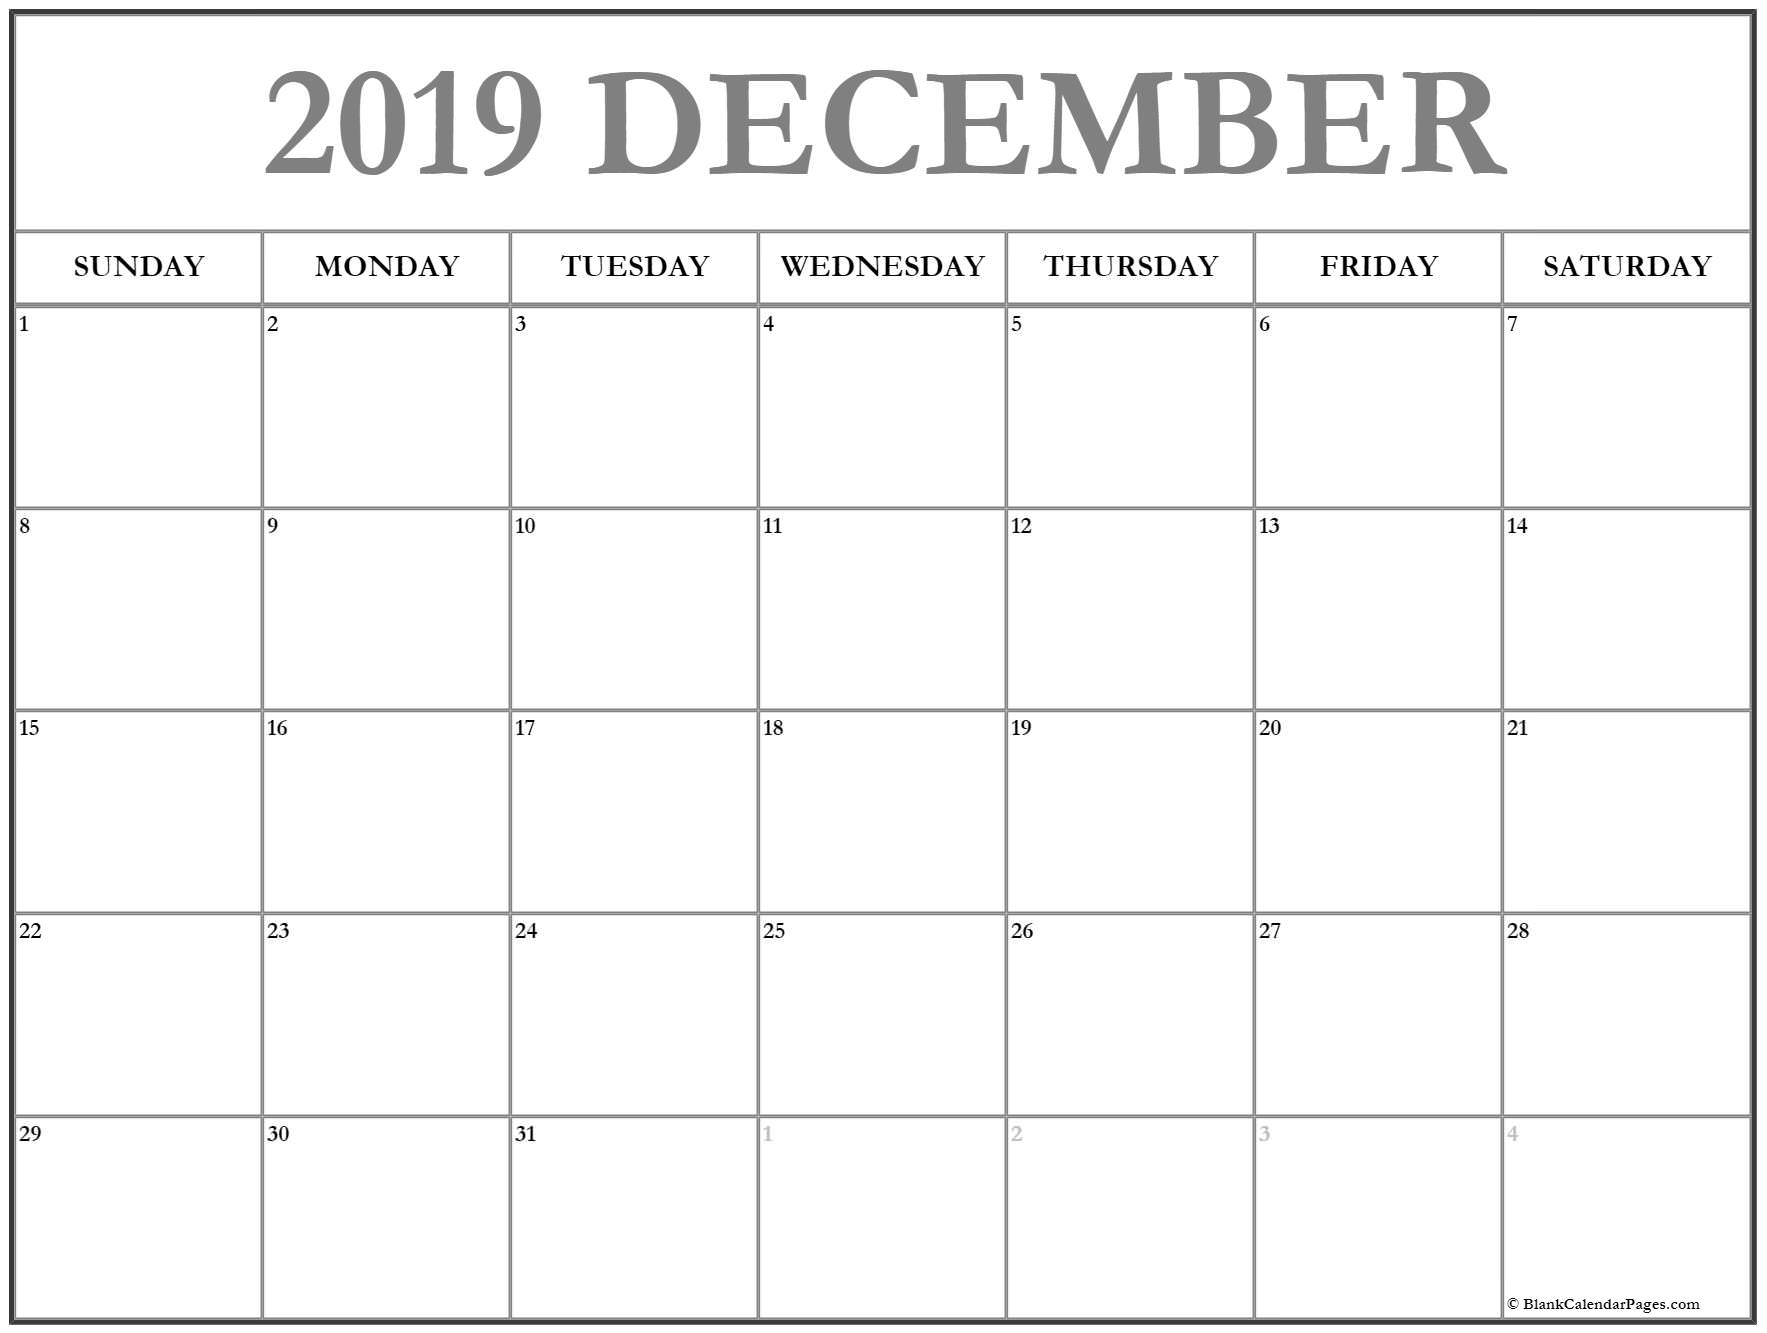 December 2019 Calendar | Free Printable Monthly Calendars for Calendars To Print Free With Space To Write